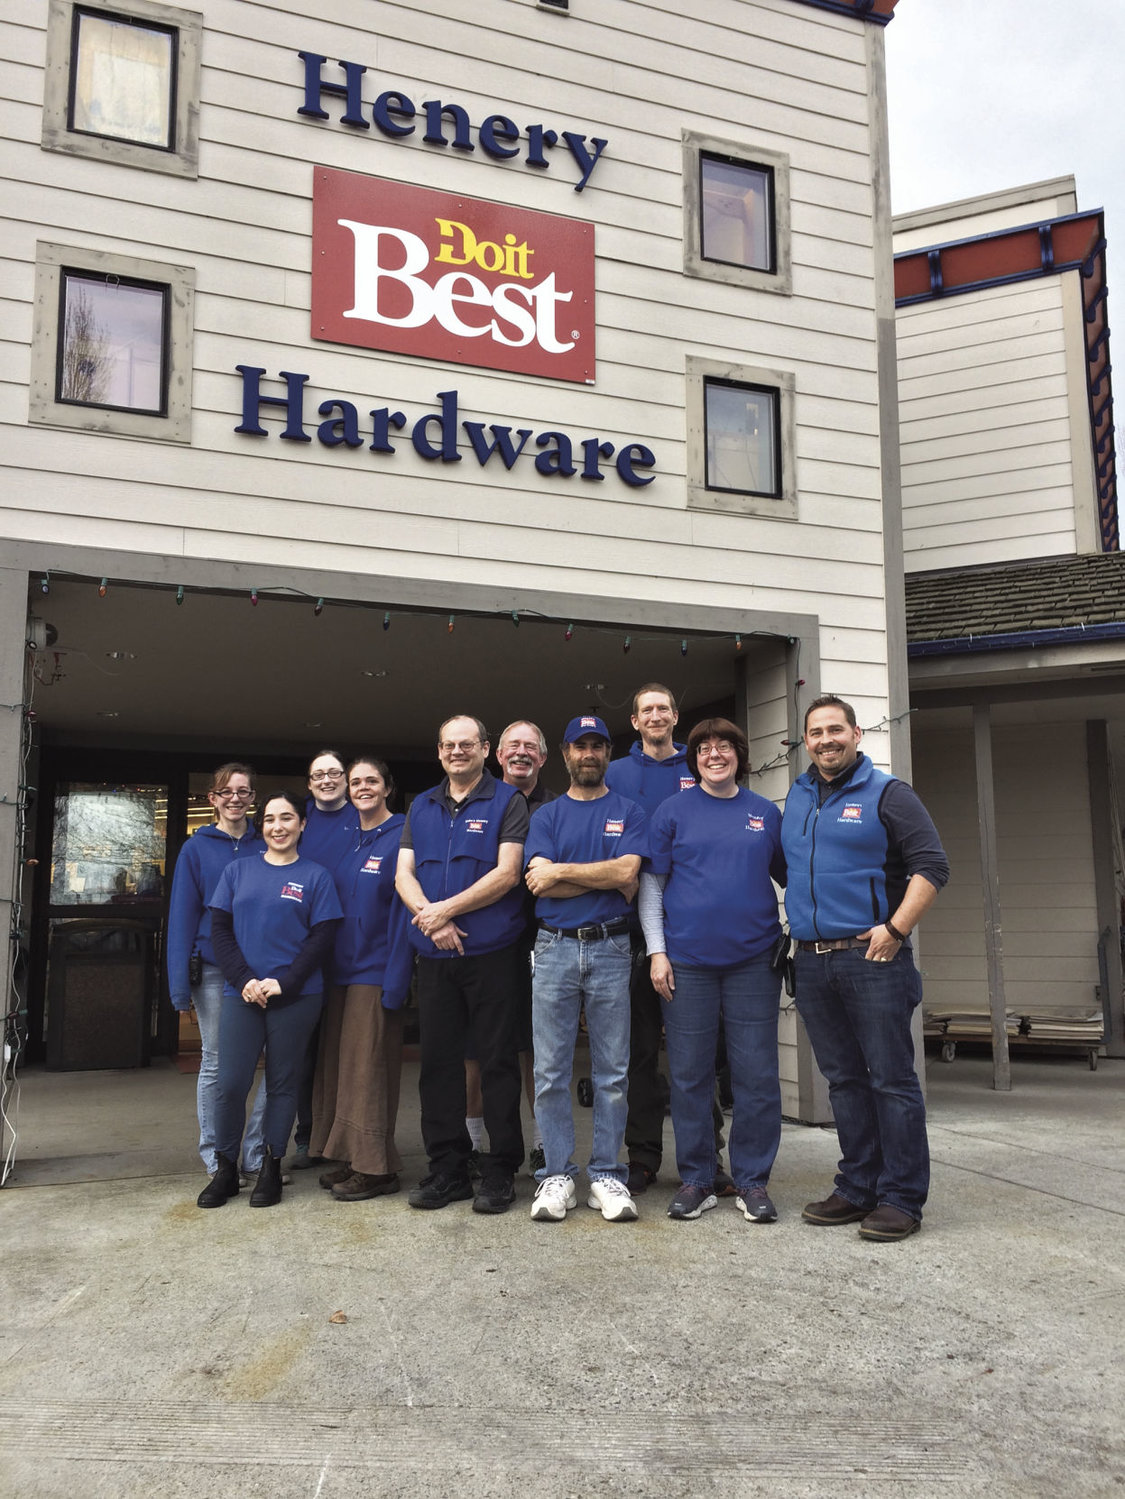 "Henery Do it Best Hardware, a family-owned store that's done business in Jefferson County since 1994, was voted favorite ""Hardware Store"" in the Port Townsend & Jefferson County Leader's 2016 Reader's Choice. Employees include Tera Cloward, Michelle Cesmat, Jessie Meyer, Kendra Rezendes, Carl Burkgren, Mike Henery, Tim Koger, Kevin McIntosh, Karen House and Matthew Henery."